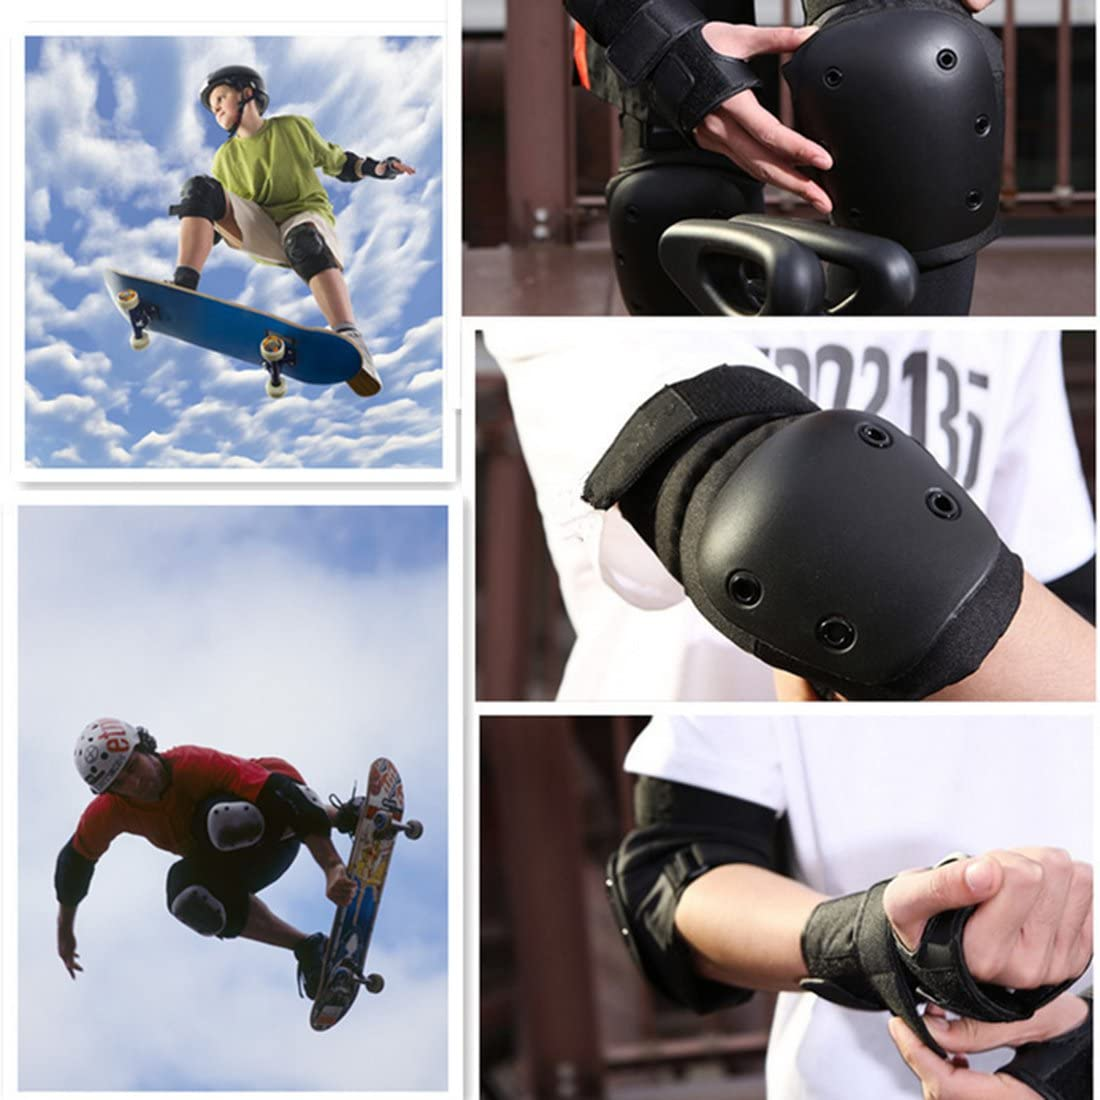 Elbow Pad Knee Support Wrist Guard and Helmet for Adult Skateboard Skating Blading Cycling Riding RuiyiF 7Pcs Adult Sports Safety Protective Gear Set